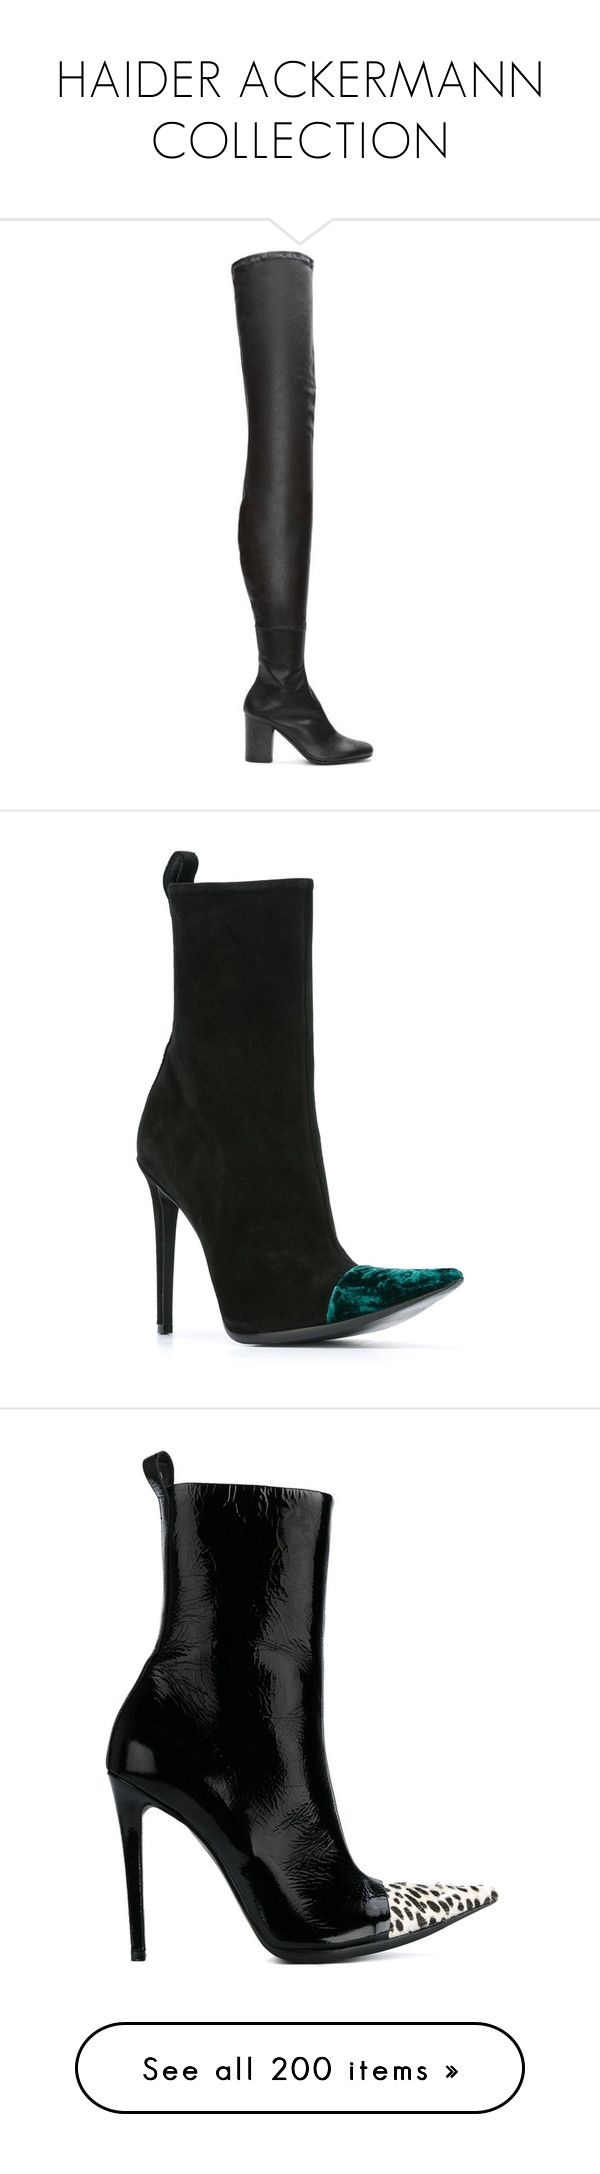 """""""HAIDER ACKERMANN COLLECTION"""" by kuropirate on Polyvore featuring shoes, boots, black, leather sole boots, stretch over the knee boots, black leather boots, leather boots, thigh high leather boots, ankle booties and short black boots"""